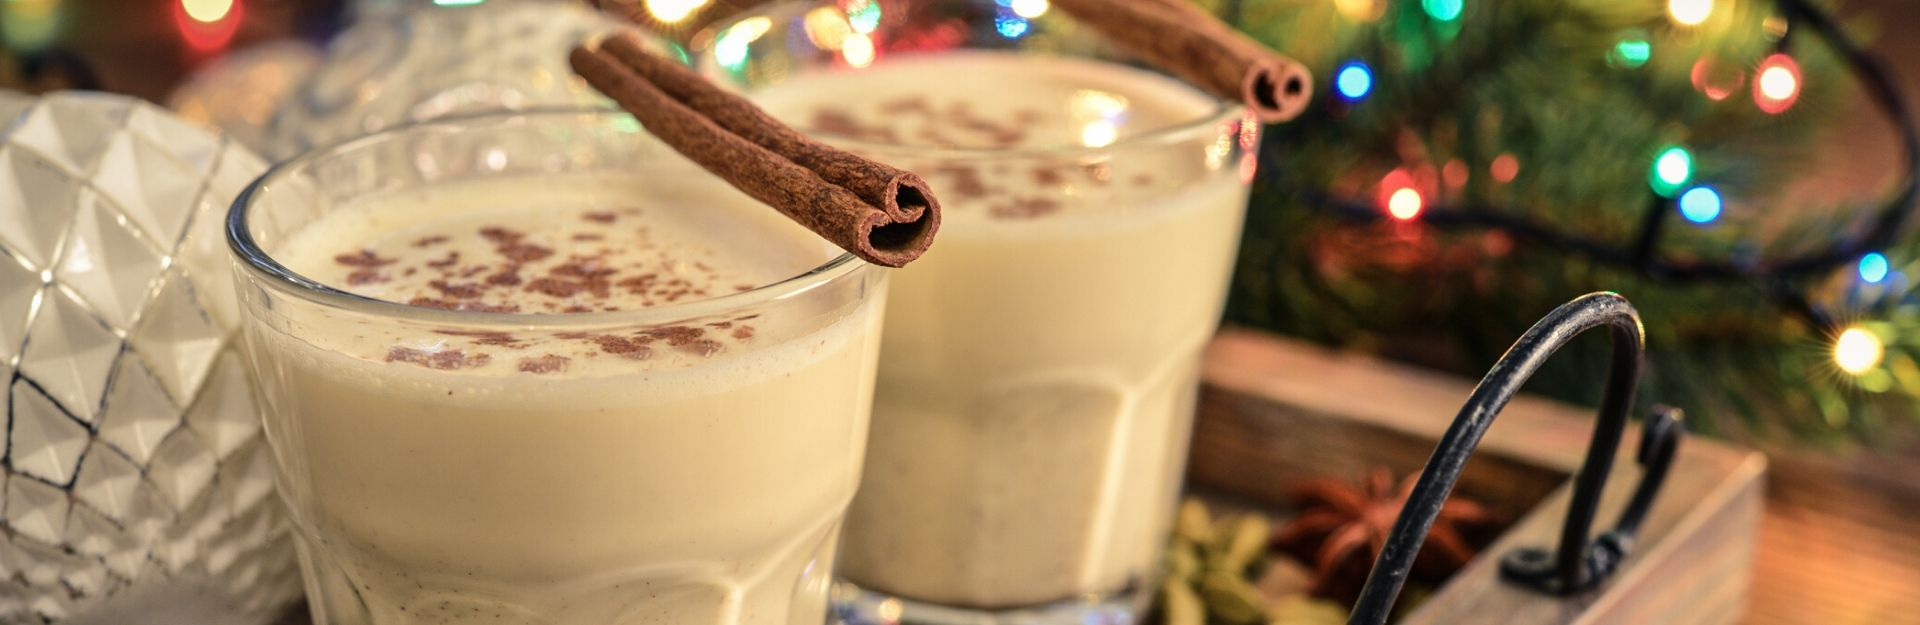 two glasses of homemade eggnog recipe